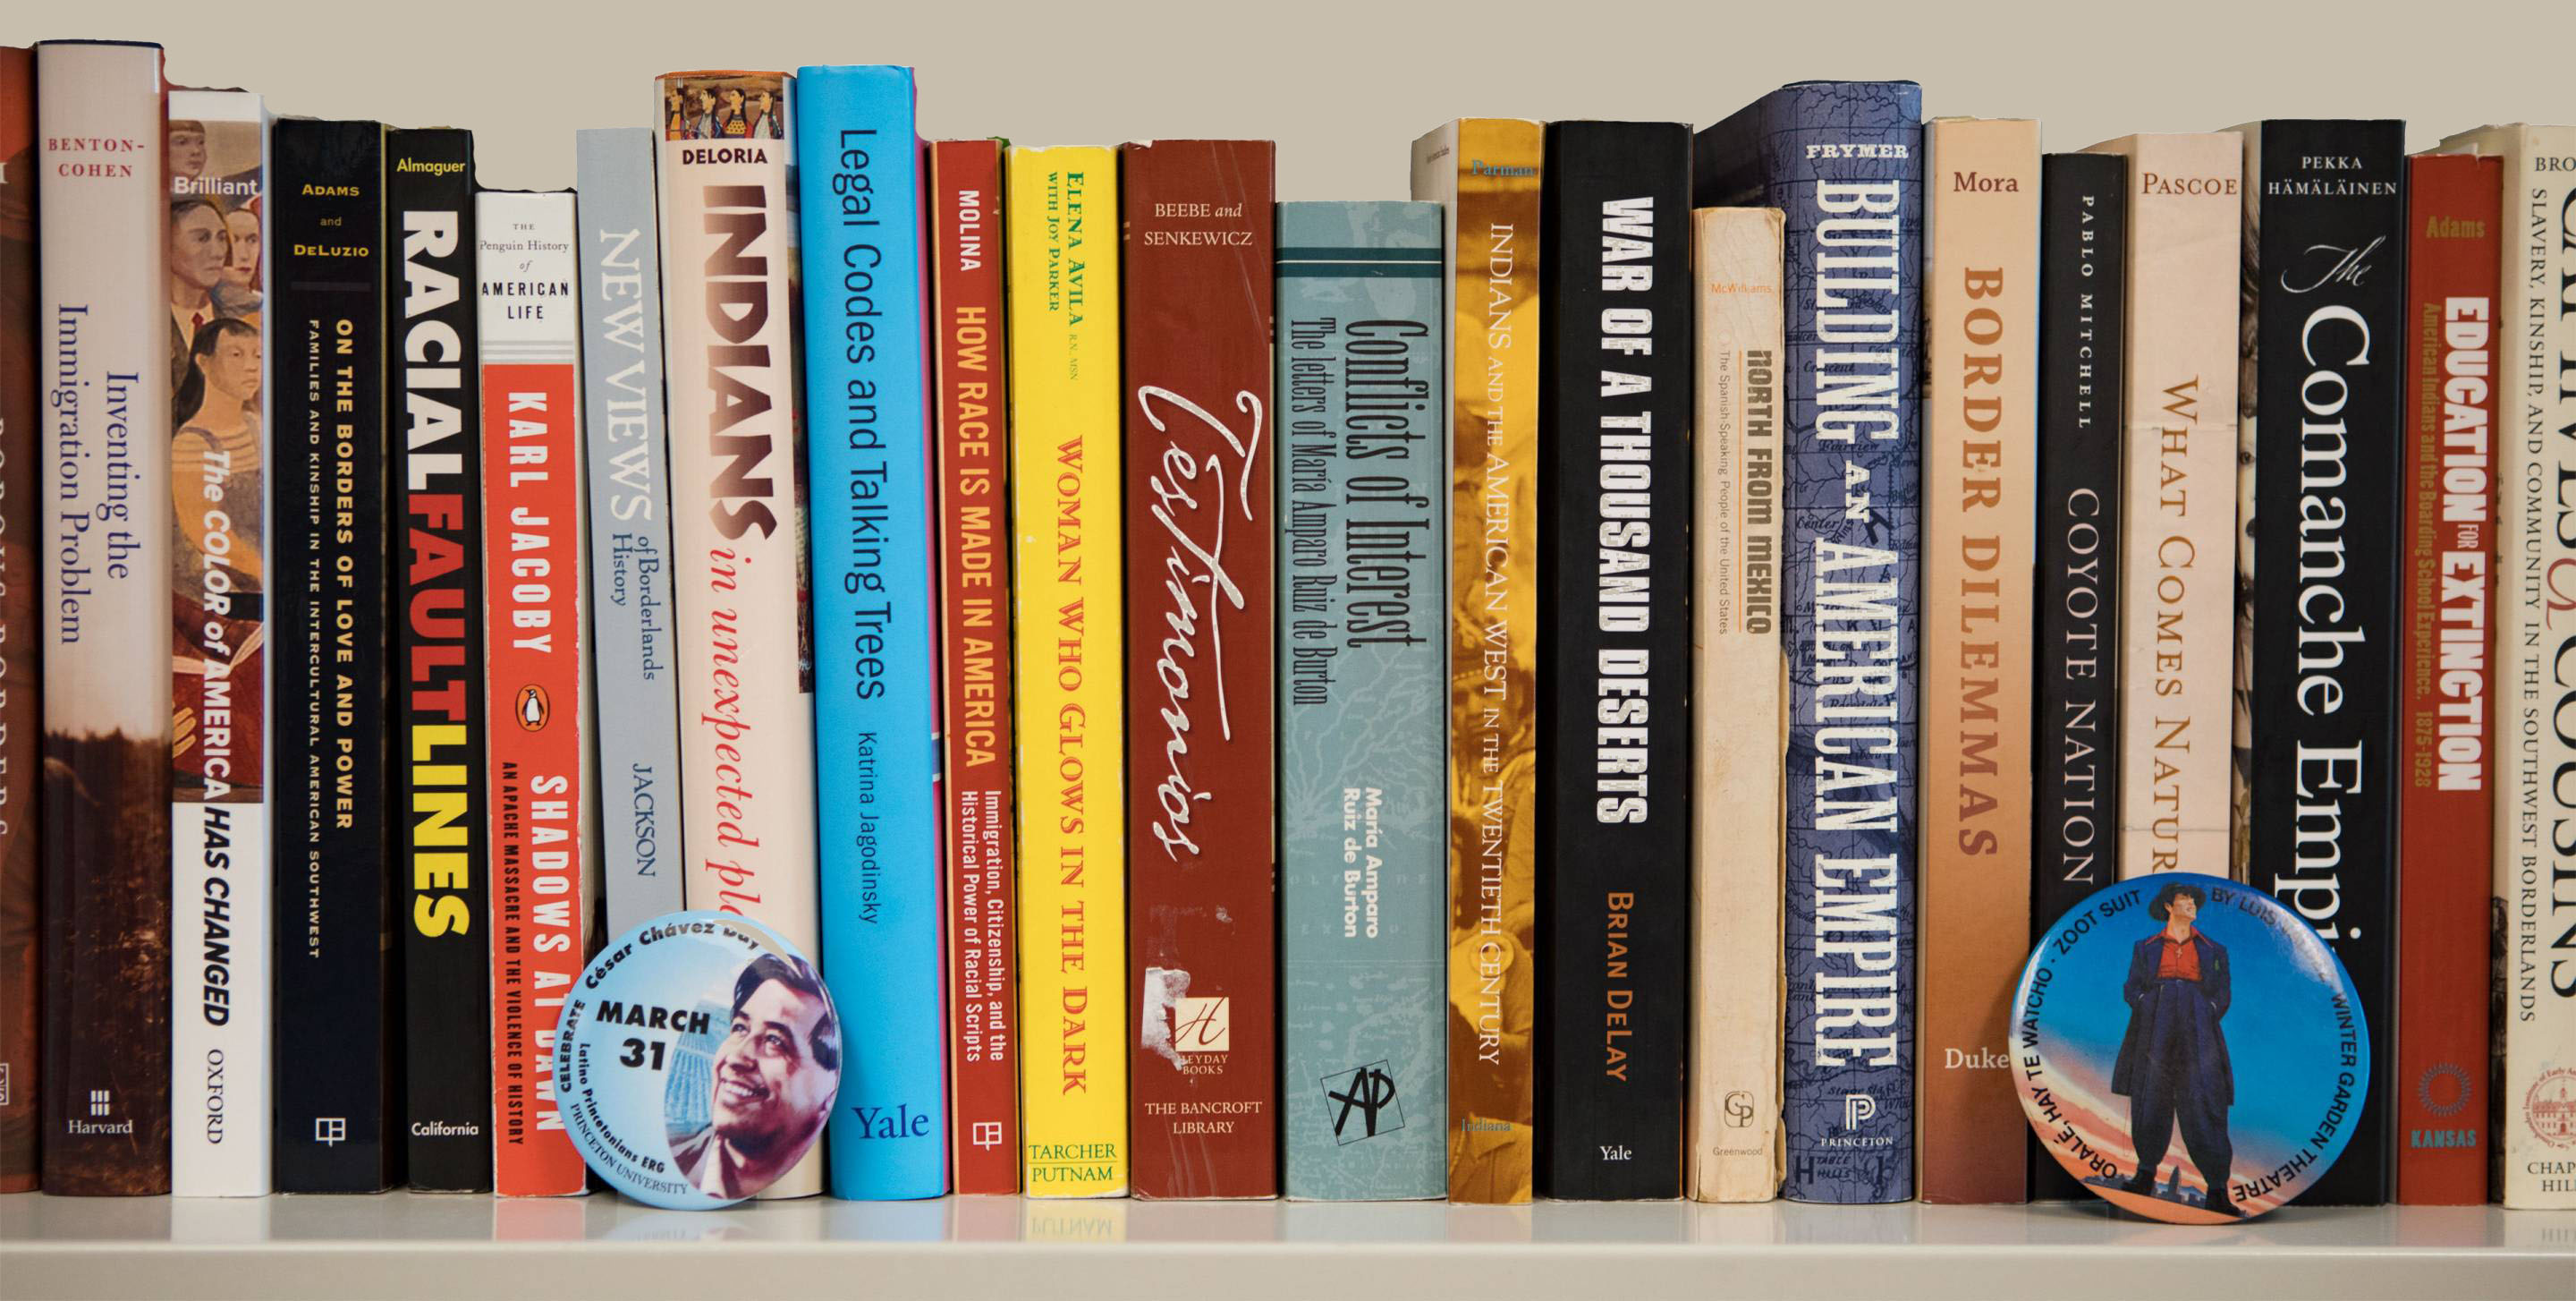 Rosina Lozano's bookshelf; Photo by Danielle Alio